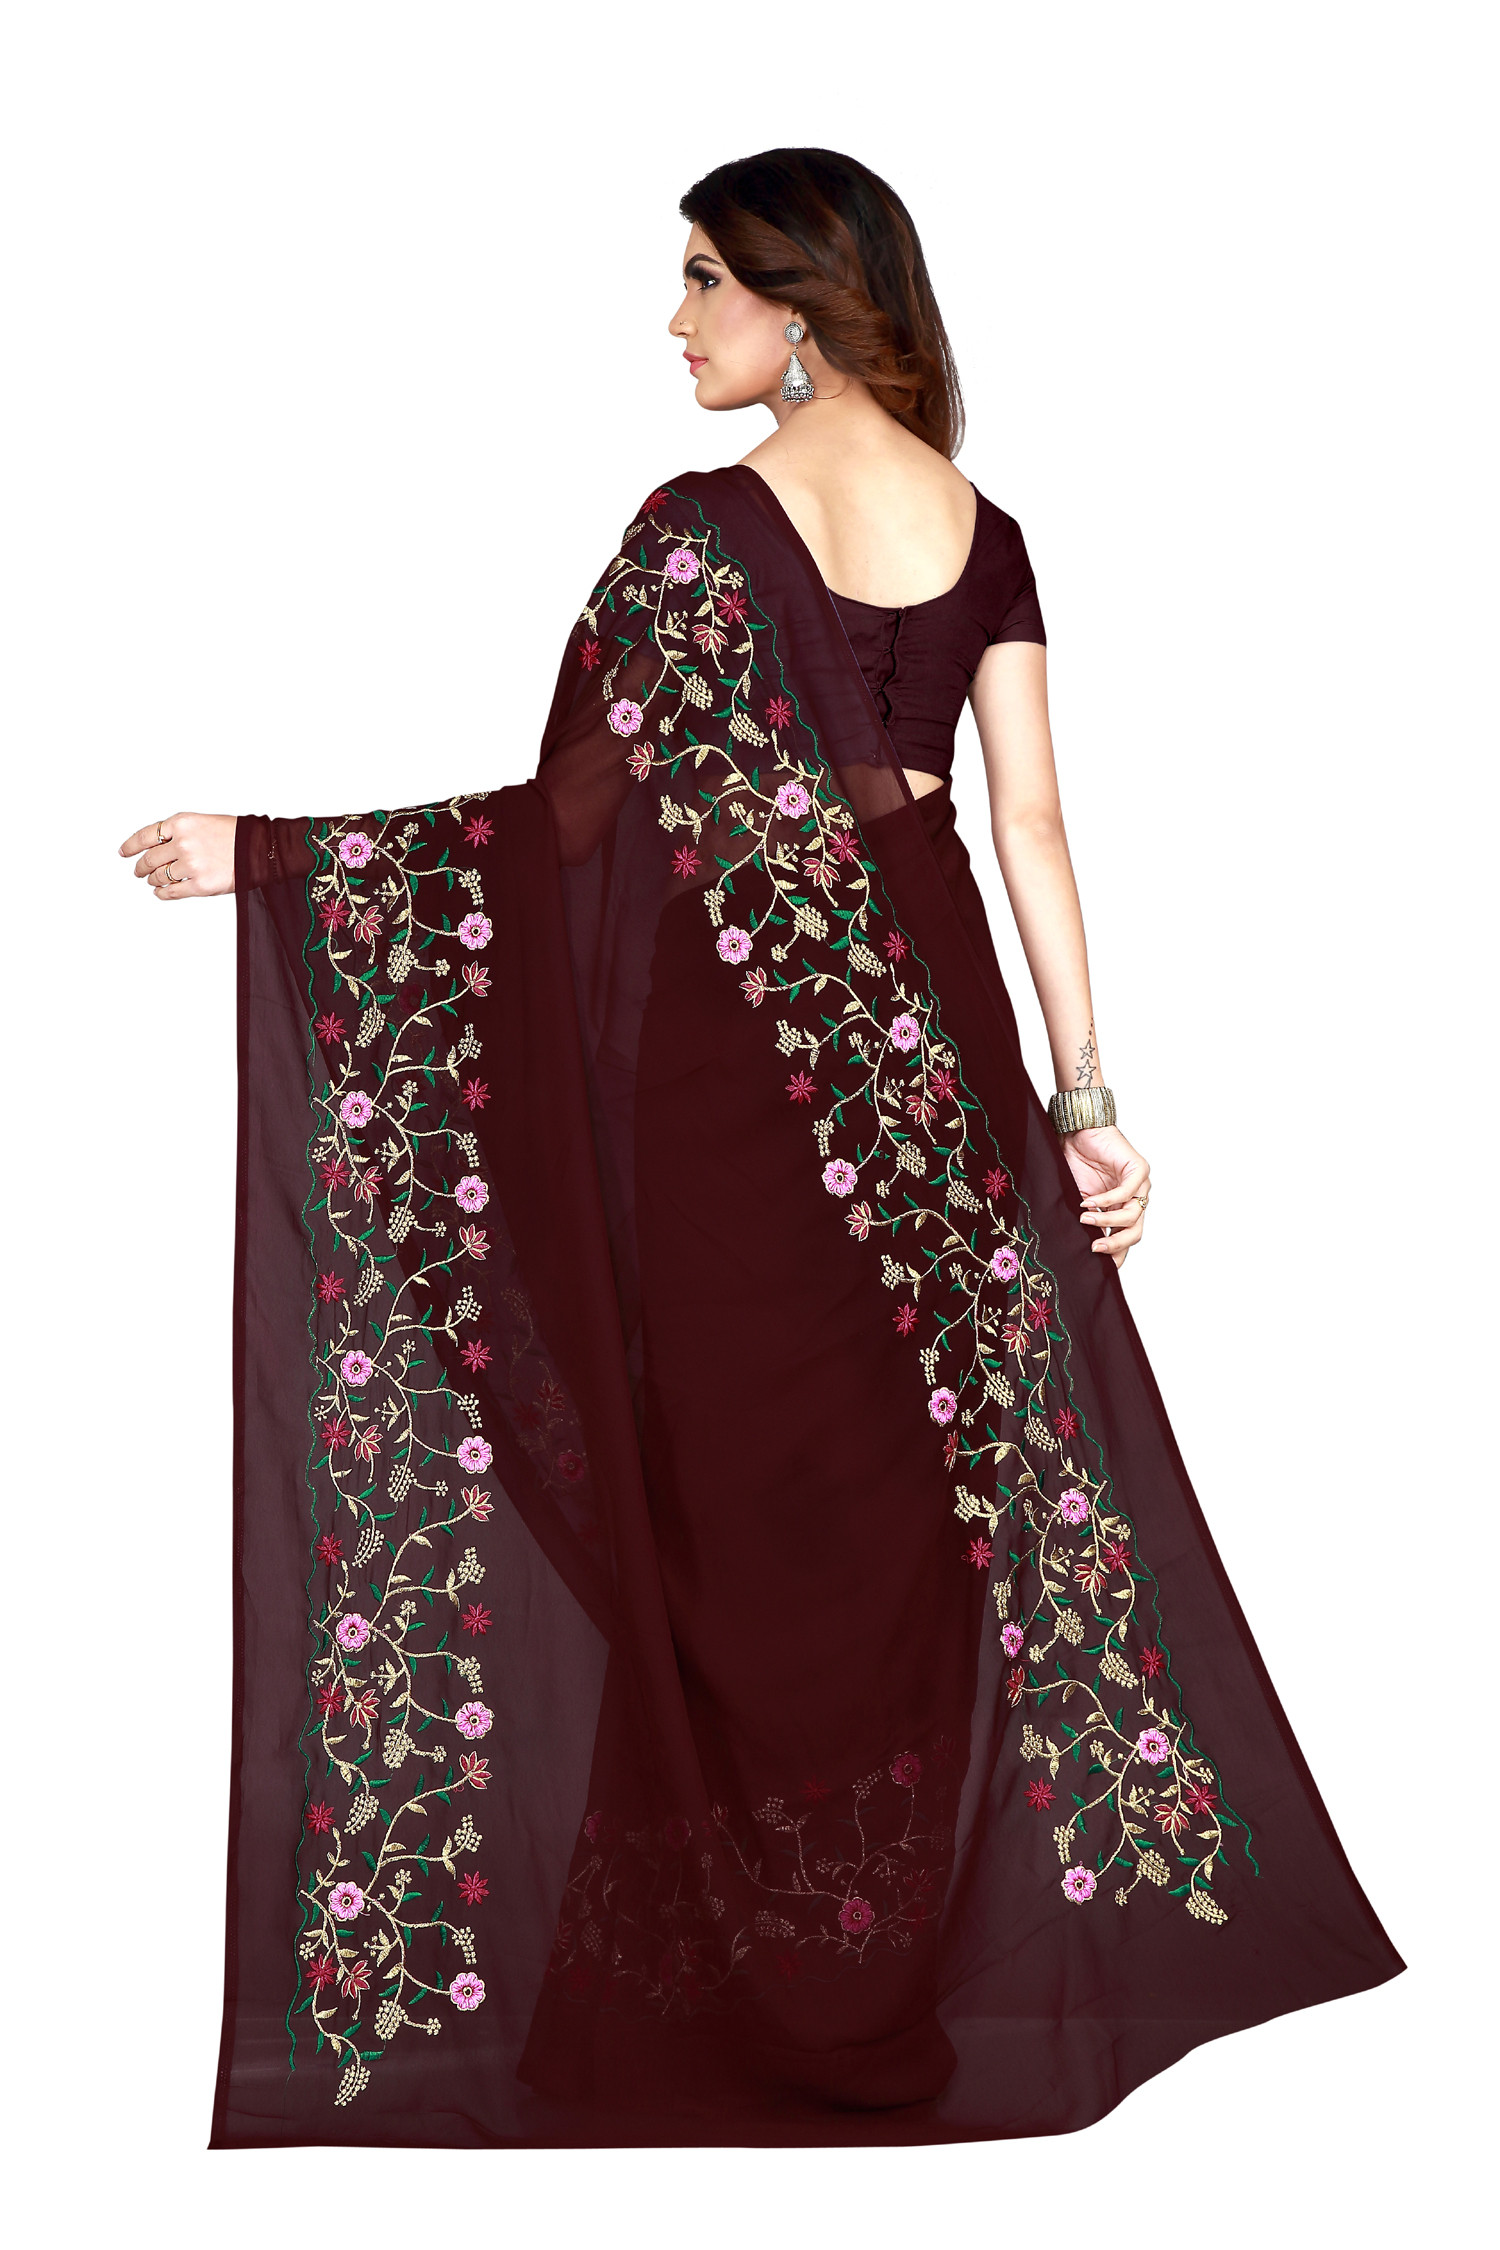 Preferable Wine Color Designer Saree